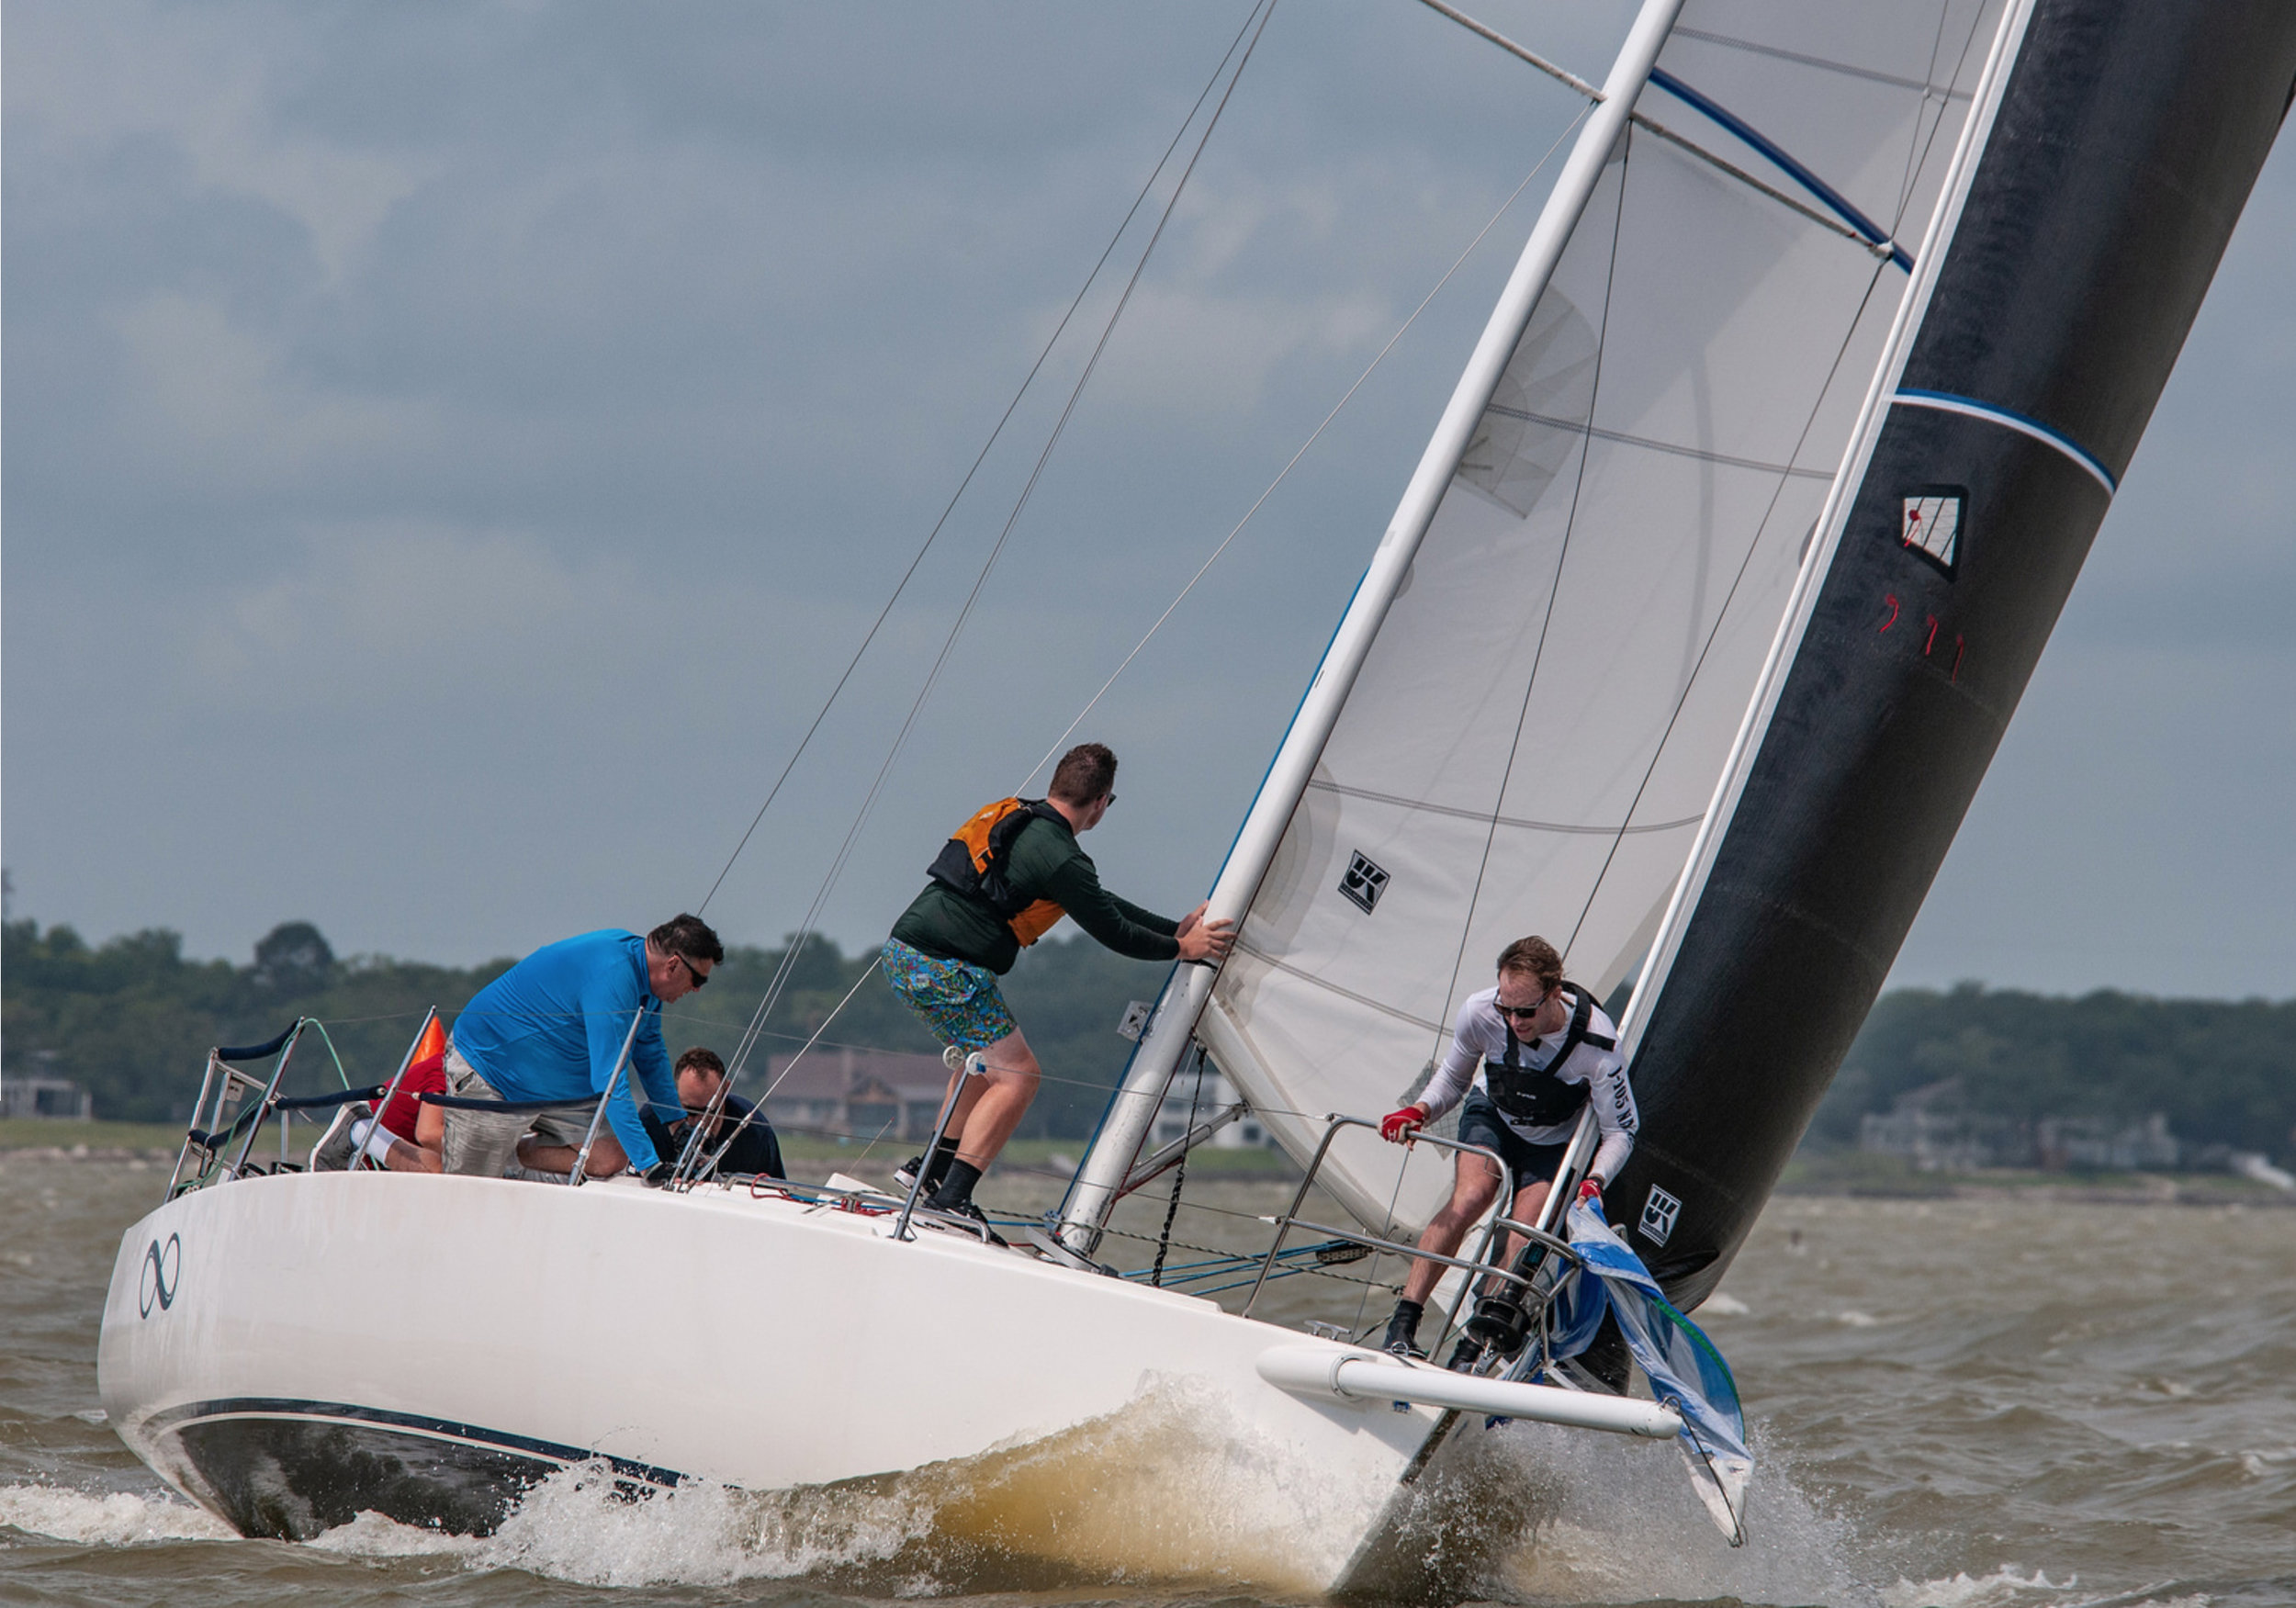 Photographer John Lever caught INFINITY going into a spinnaker set. Here jib is made with UK Sailmakers' Titanium LiteSkin construction.